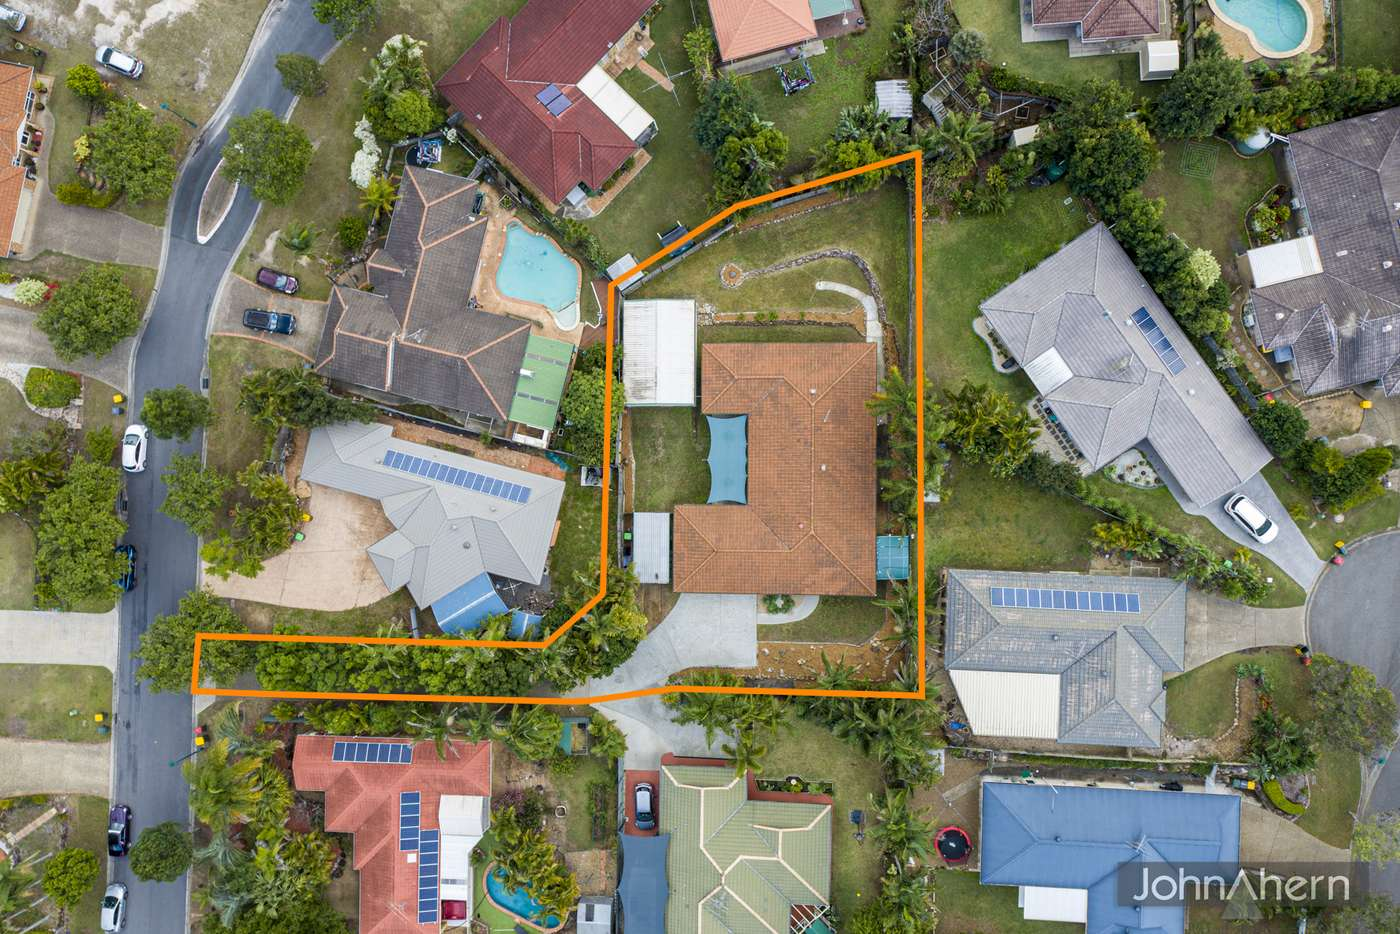 Main view of Homely house listing, 47 Chesterfield Cres, Kuraby QLD 4112